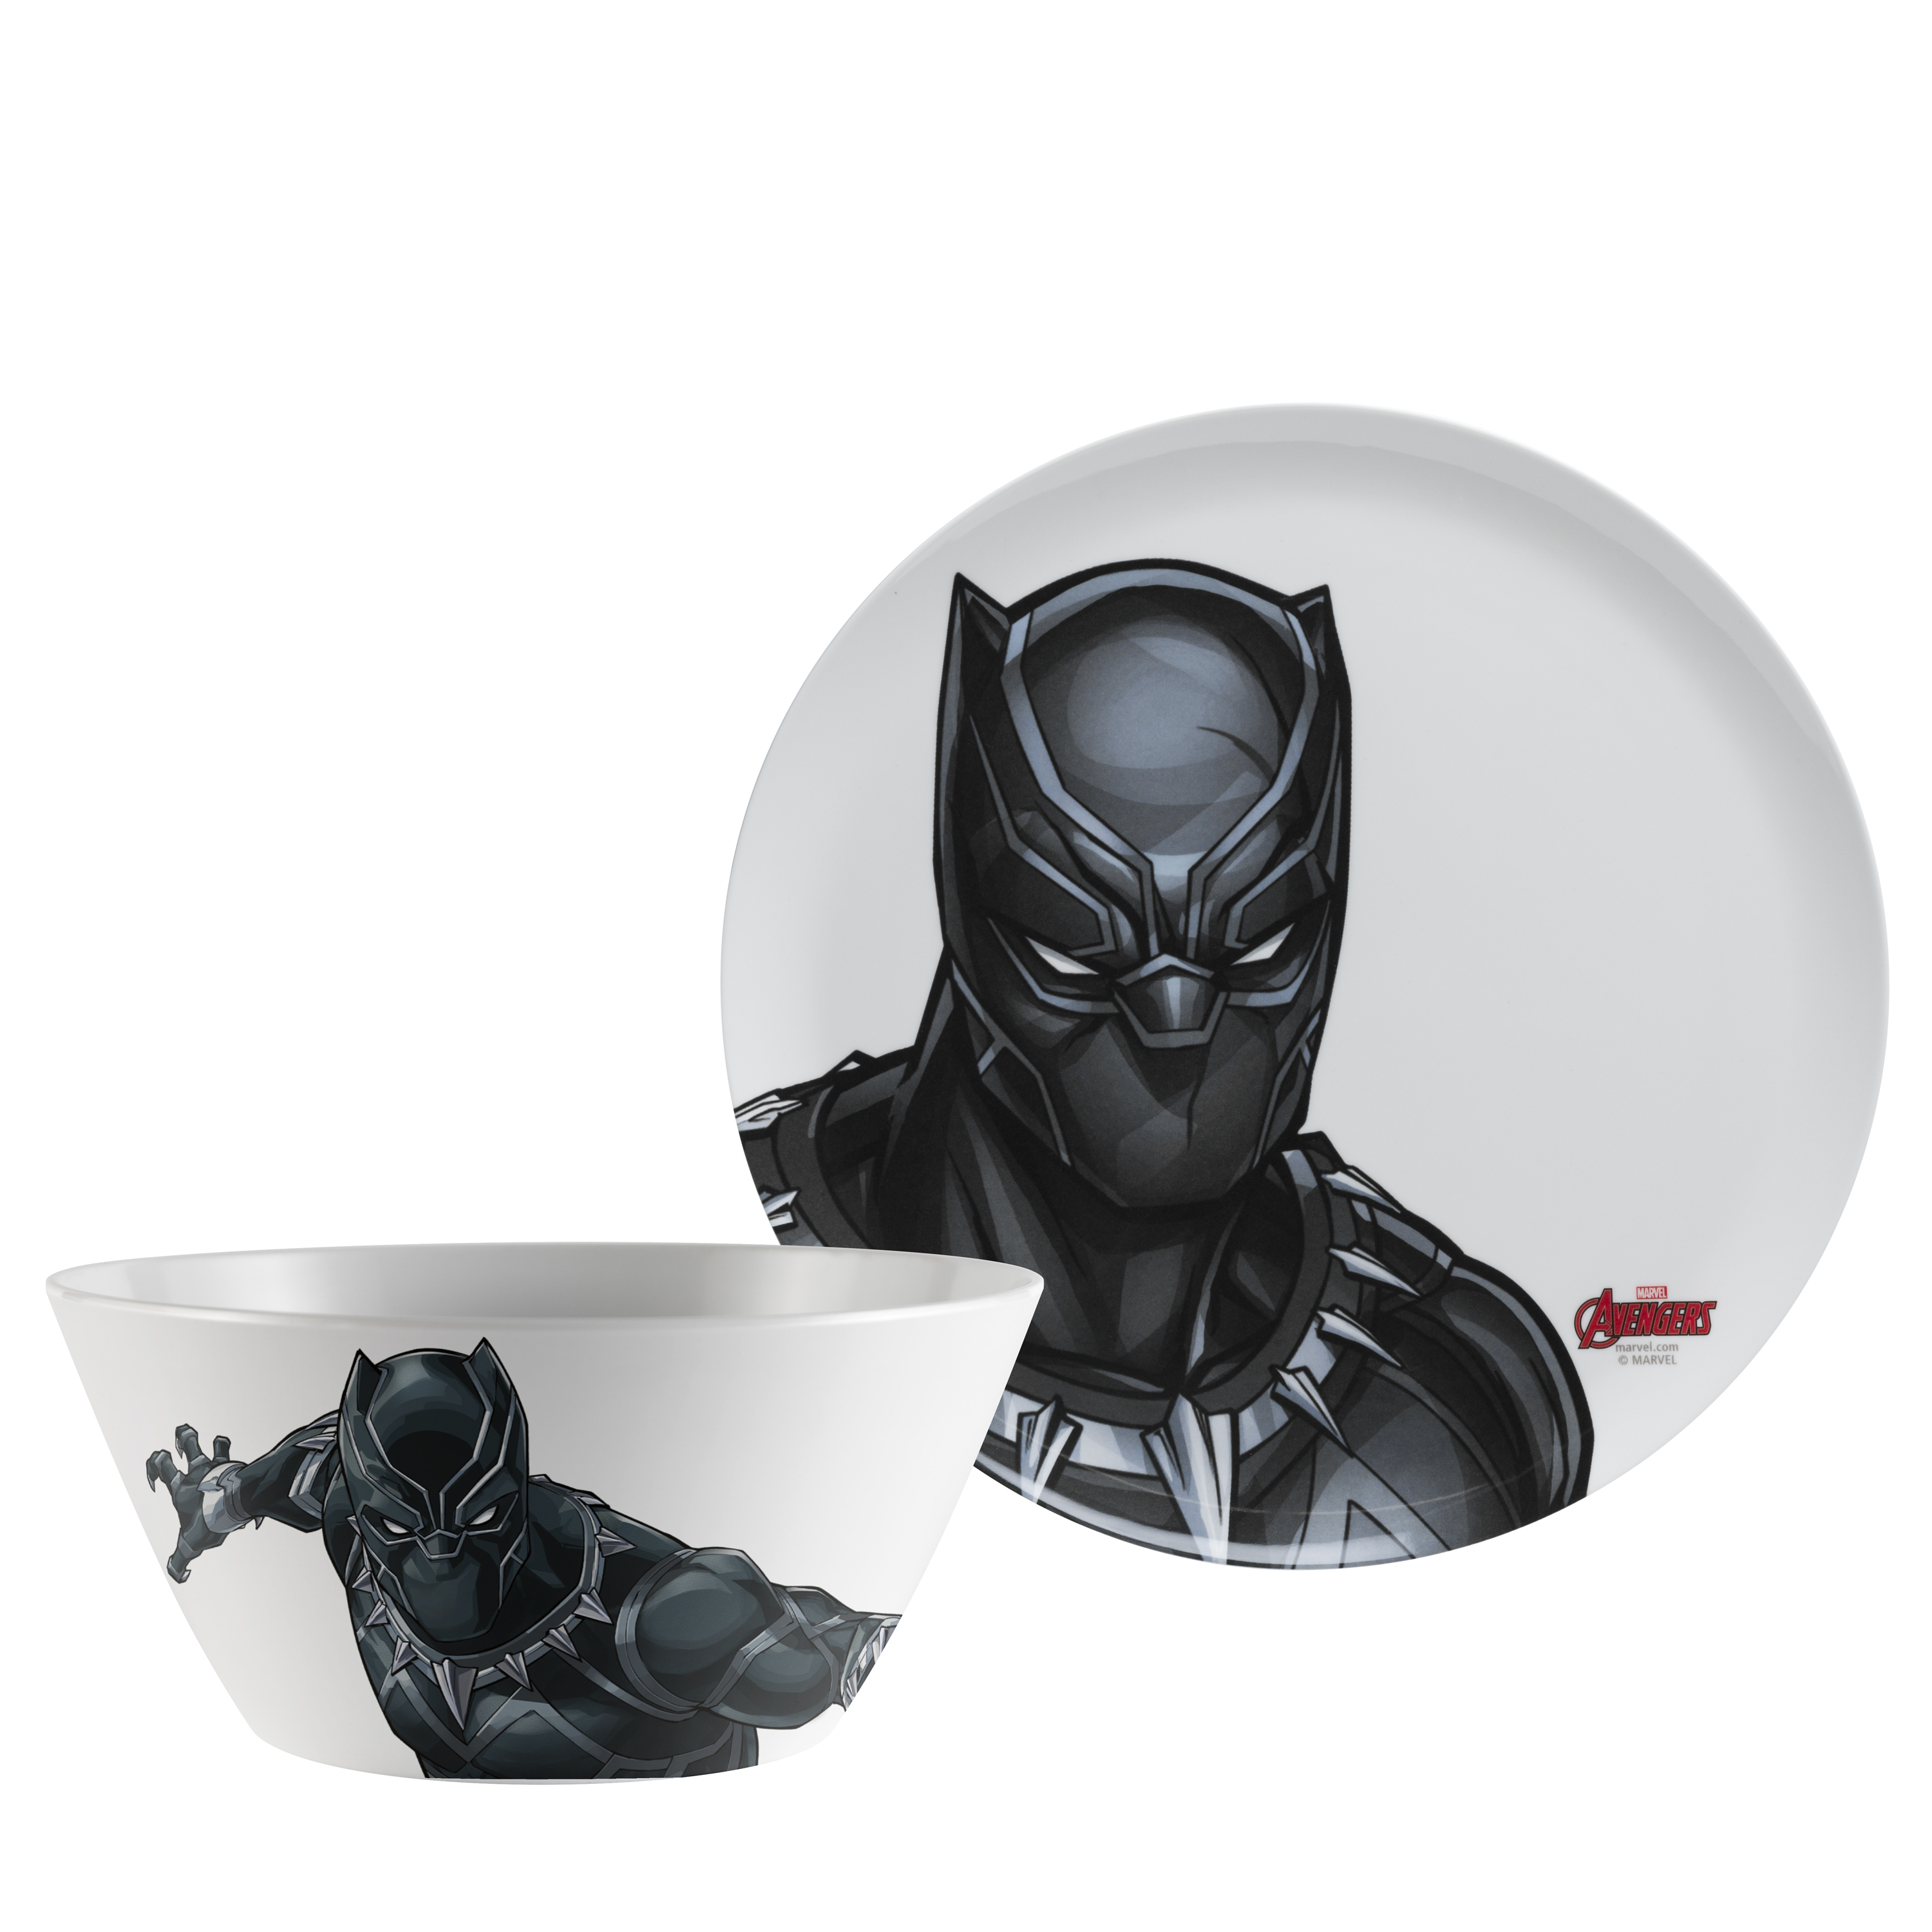 Marvel Comics Dinnerware Set, Black Panther & The Avengers, 2-piece set slideshow image 2